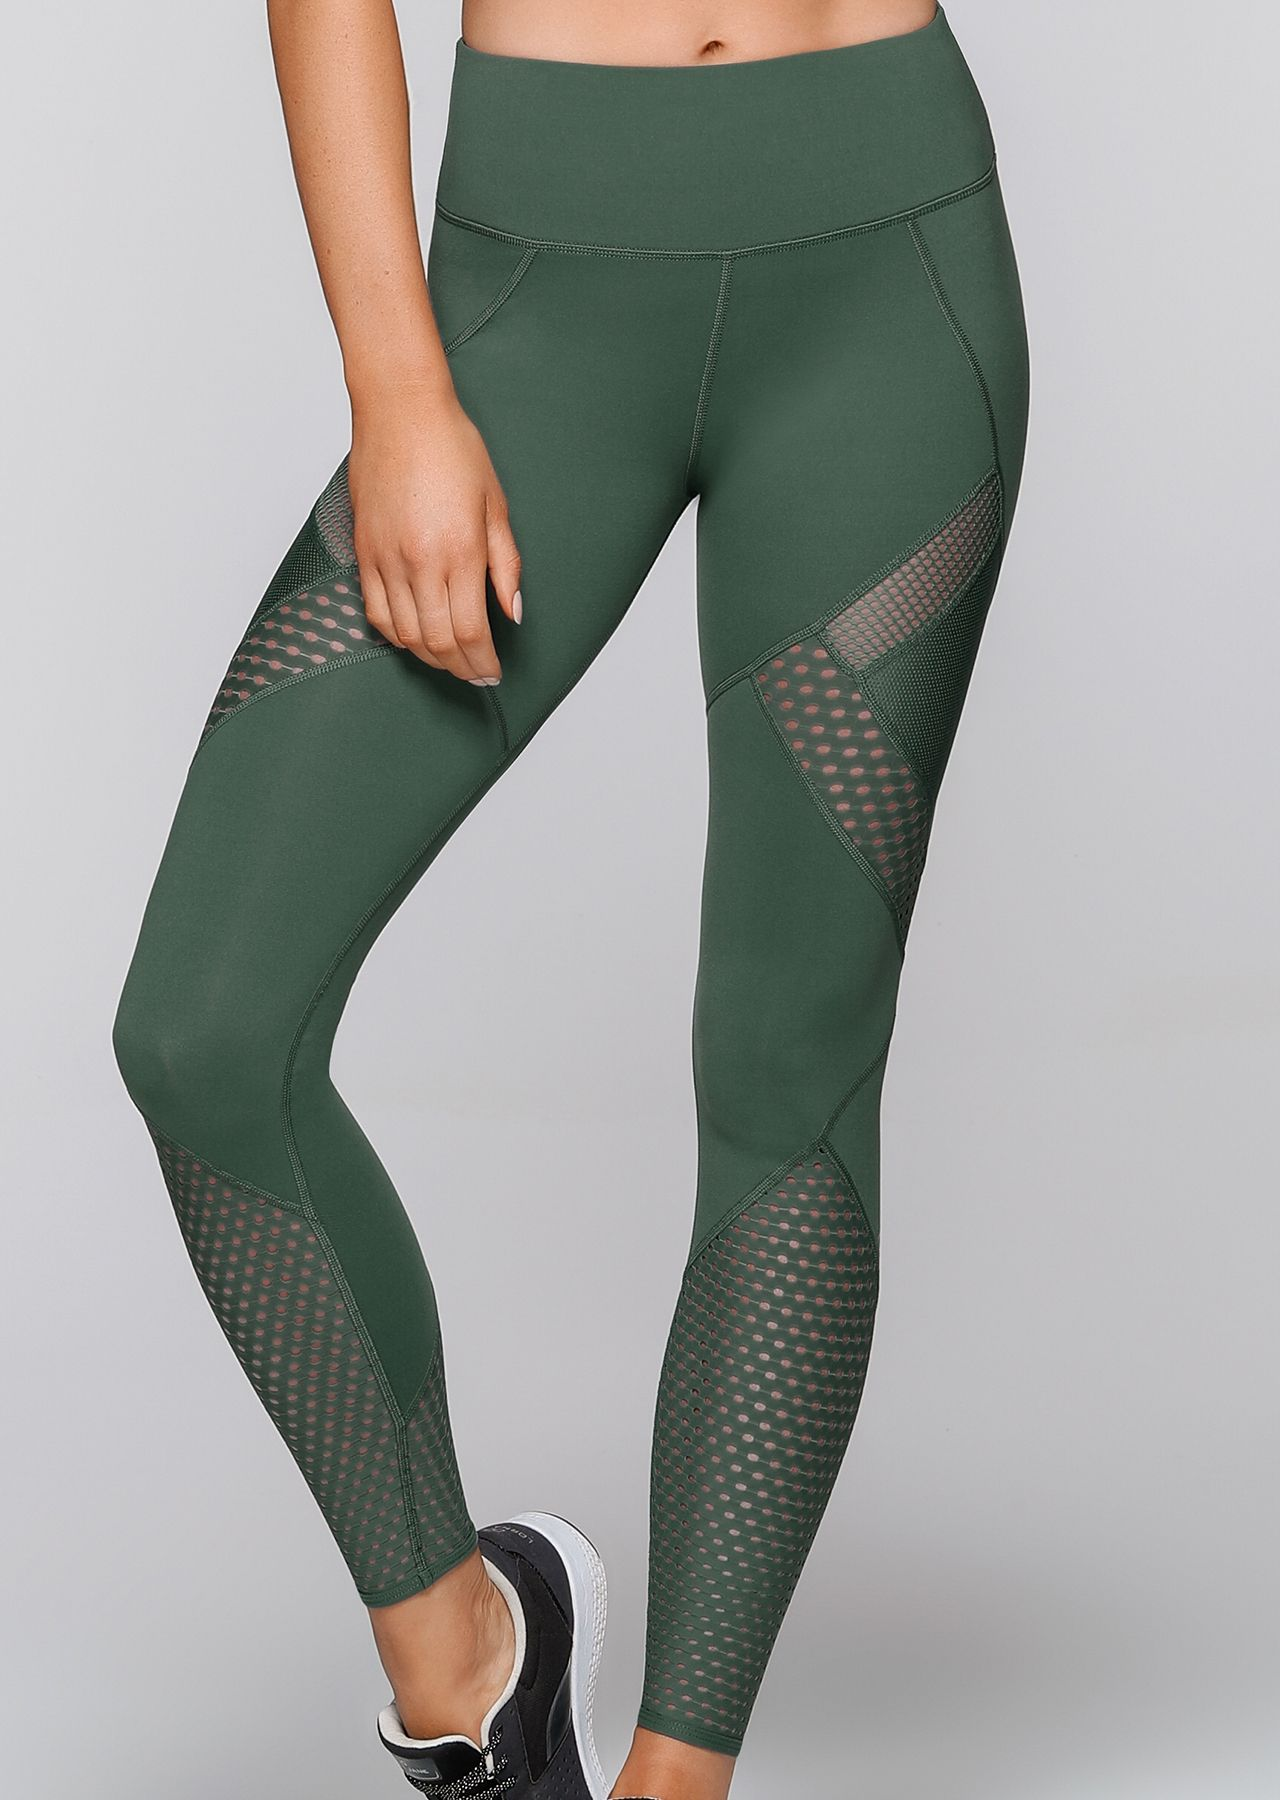 Women's Running Tights, Workout & Yoga Leggings, designed for High  Intensity Workouts. Shop Lorna Jane's Premium Activewear range of High  Performance Active ...